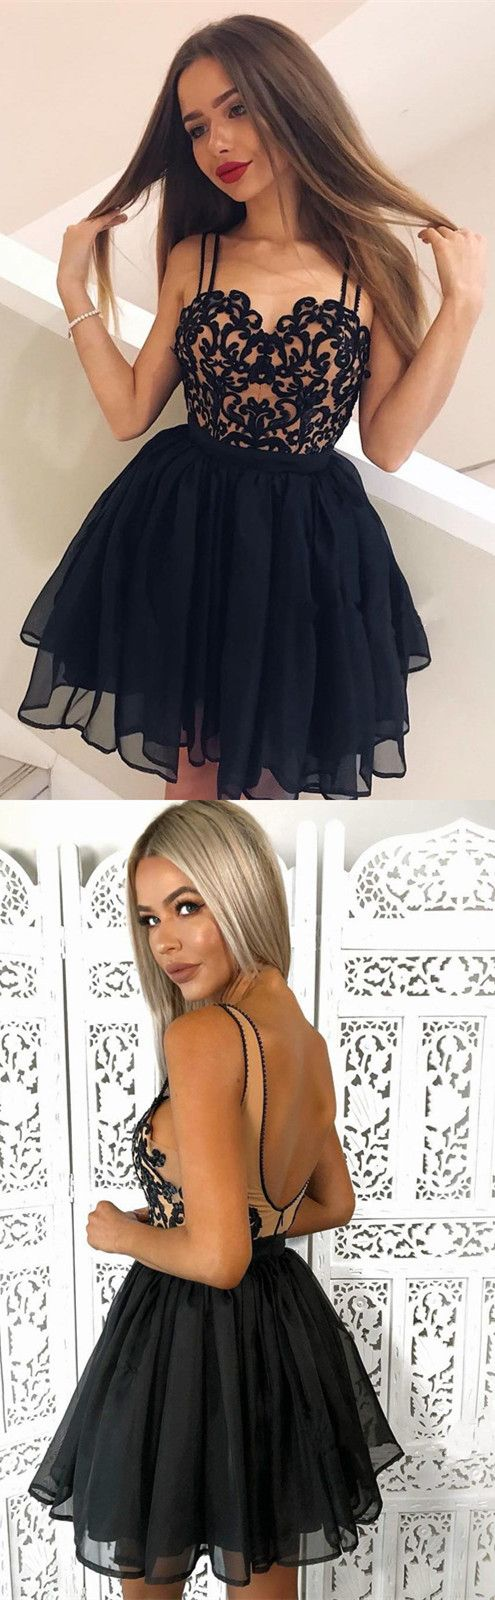 Chic Black Lace Embroidery Tulle Open Back Prom Short Dresses 2018 Semi Formal Dresses For Homecoming Party